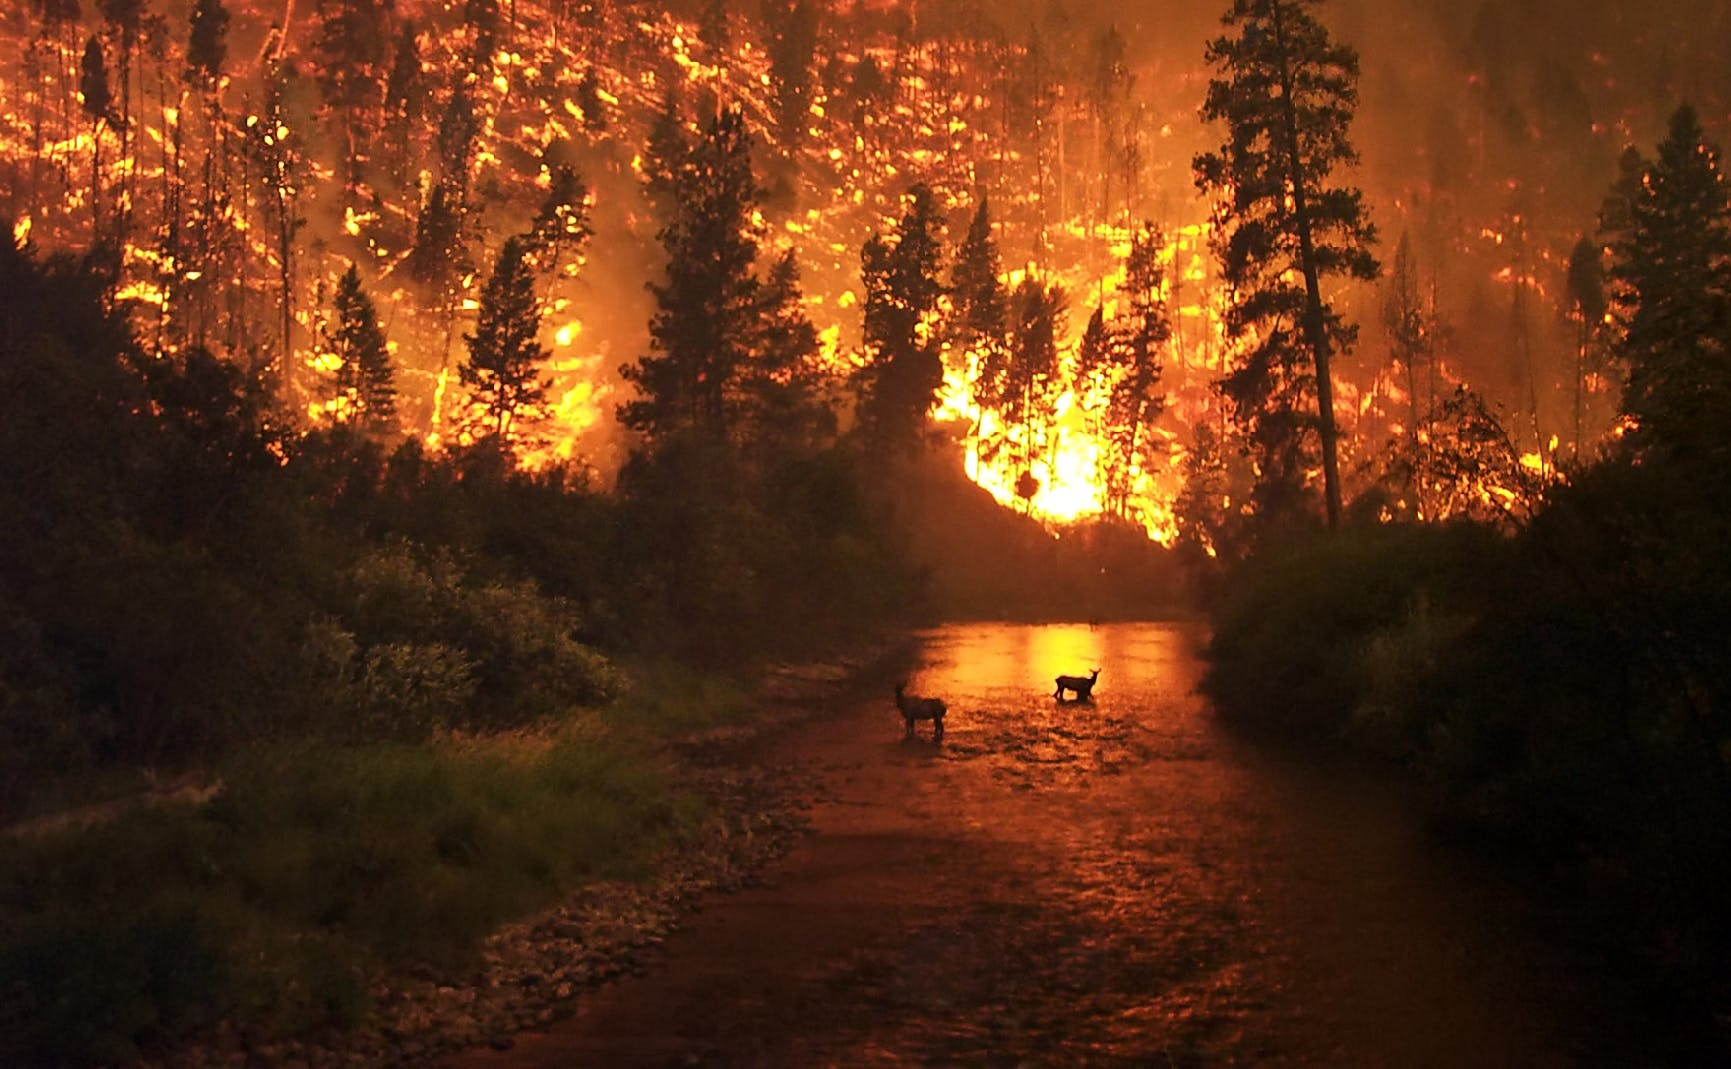 A wildfire in the Bitterroot National Forest in Montana, United States. Two elk stand in a stream with a hillside on fire in the background.